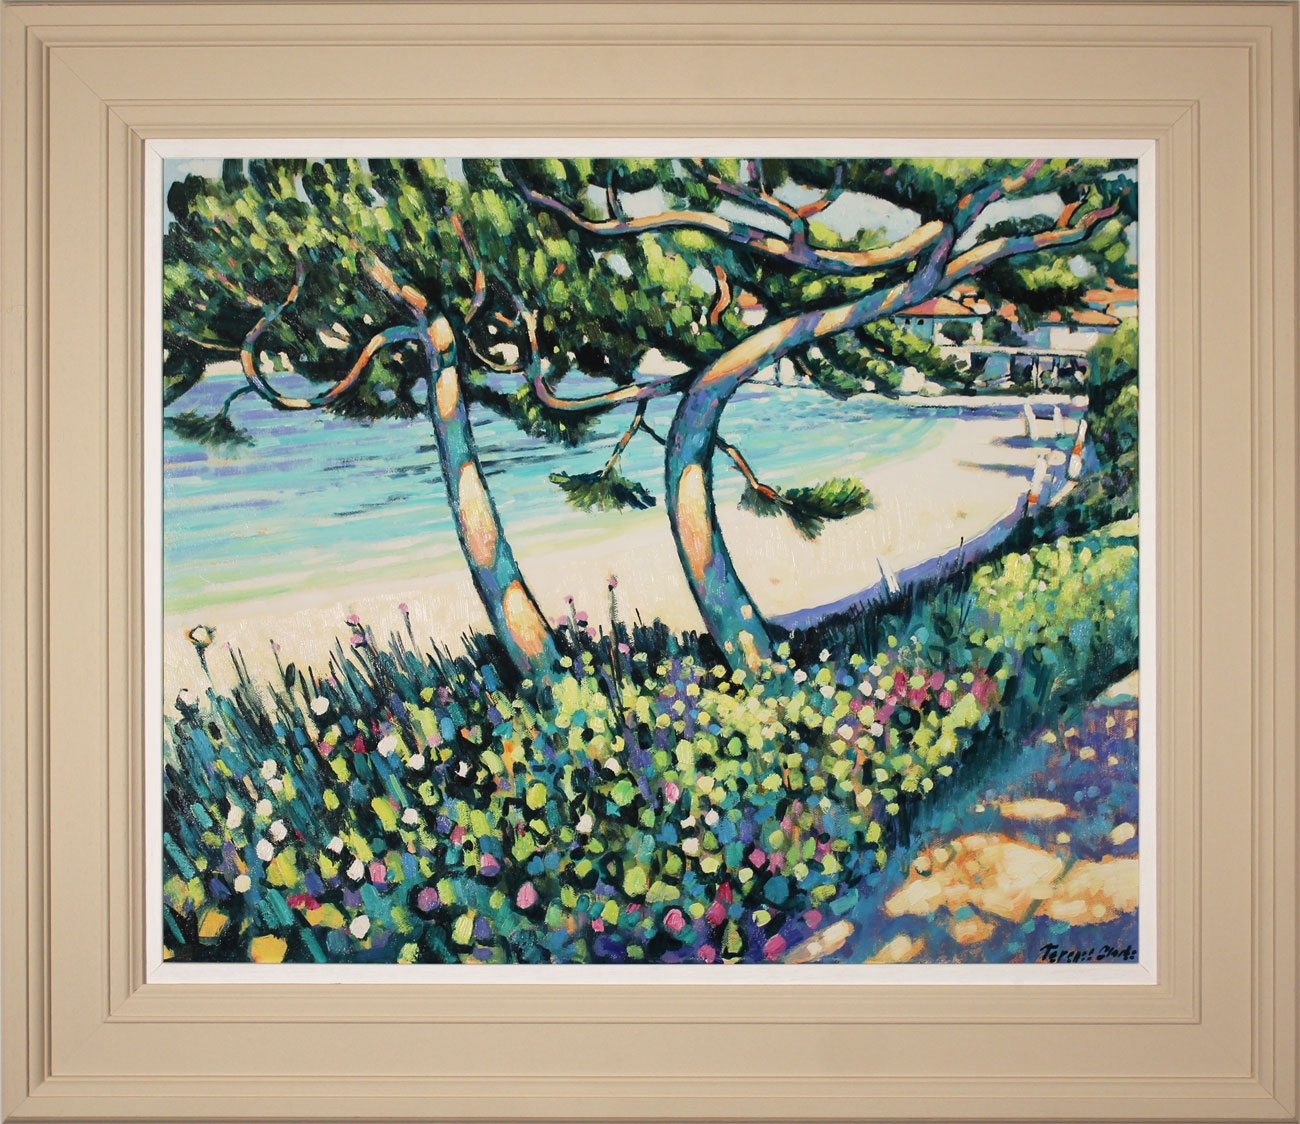 Terence Clarke, Original acrylic painting on canvas, Pine Shadows, Cap Ferrat, click to enlarge